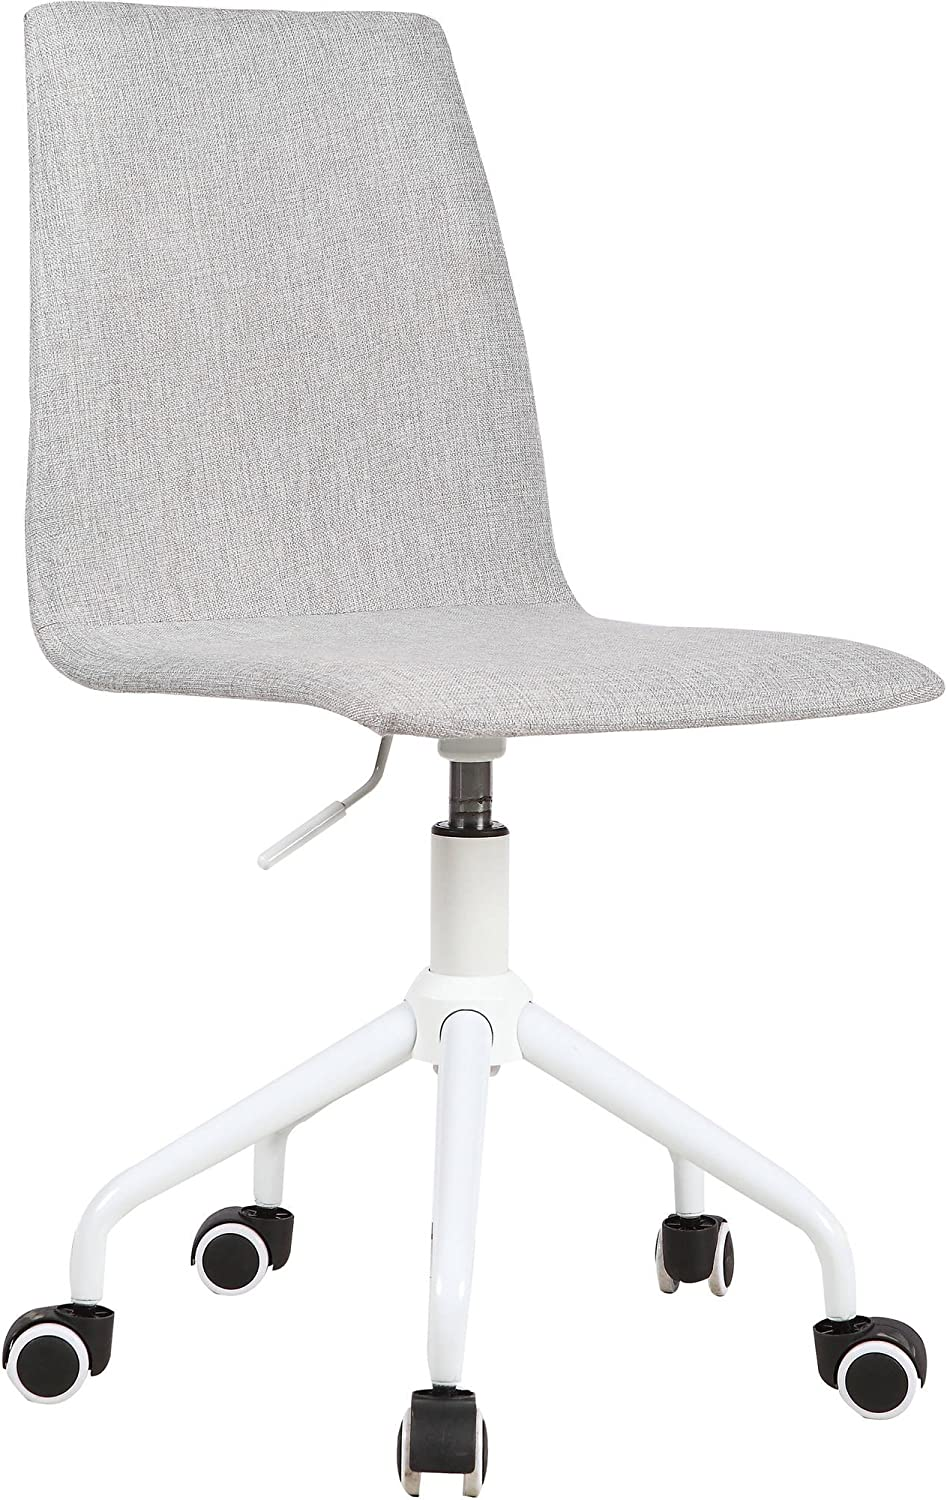 Urban Shop Rolling Linen Swivel Task Chair, Grey